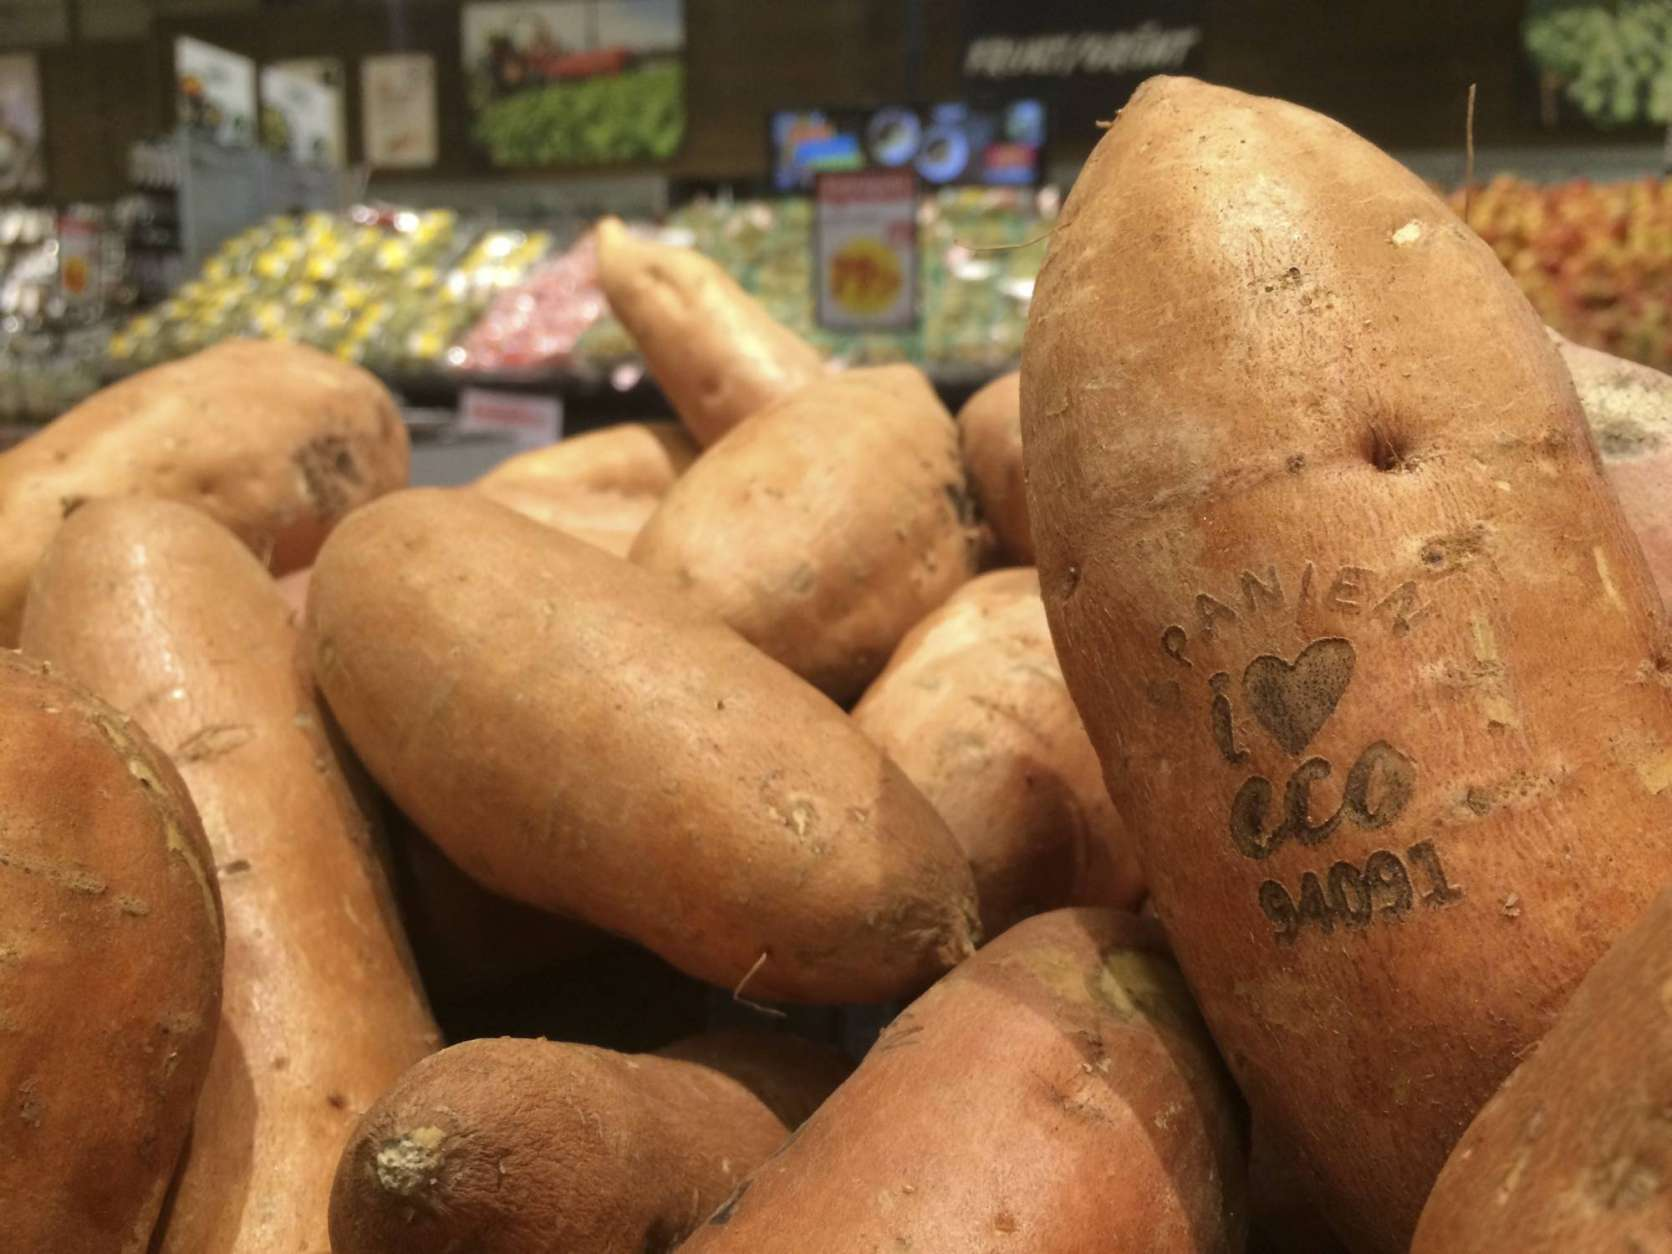 In this photo taken on Tuesday Jan. 31, 2017, laser branded sweet potatoes are displayed at the ICA Kvantum supermarket in Malmo, Sweden. Something high-tech is happening in the produce aisle at some Swedish supermarkets, where laser marks have replaced labels on the organic avocados and sweet potatoes. (AP Photo/James Brooks)